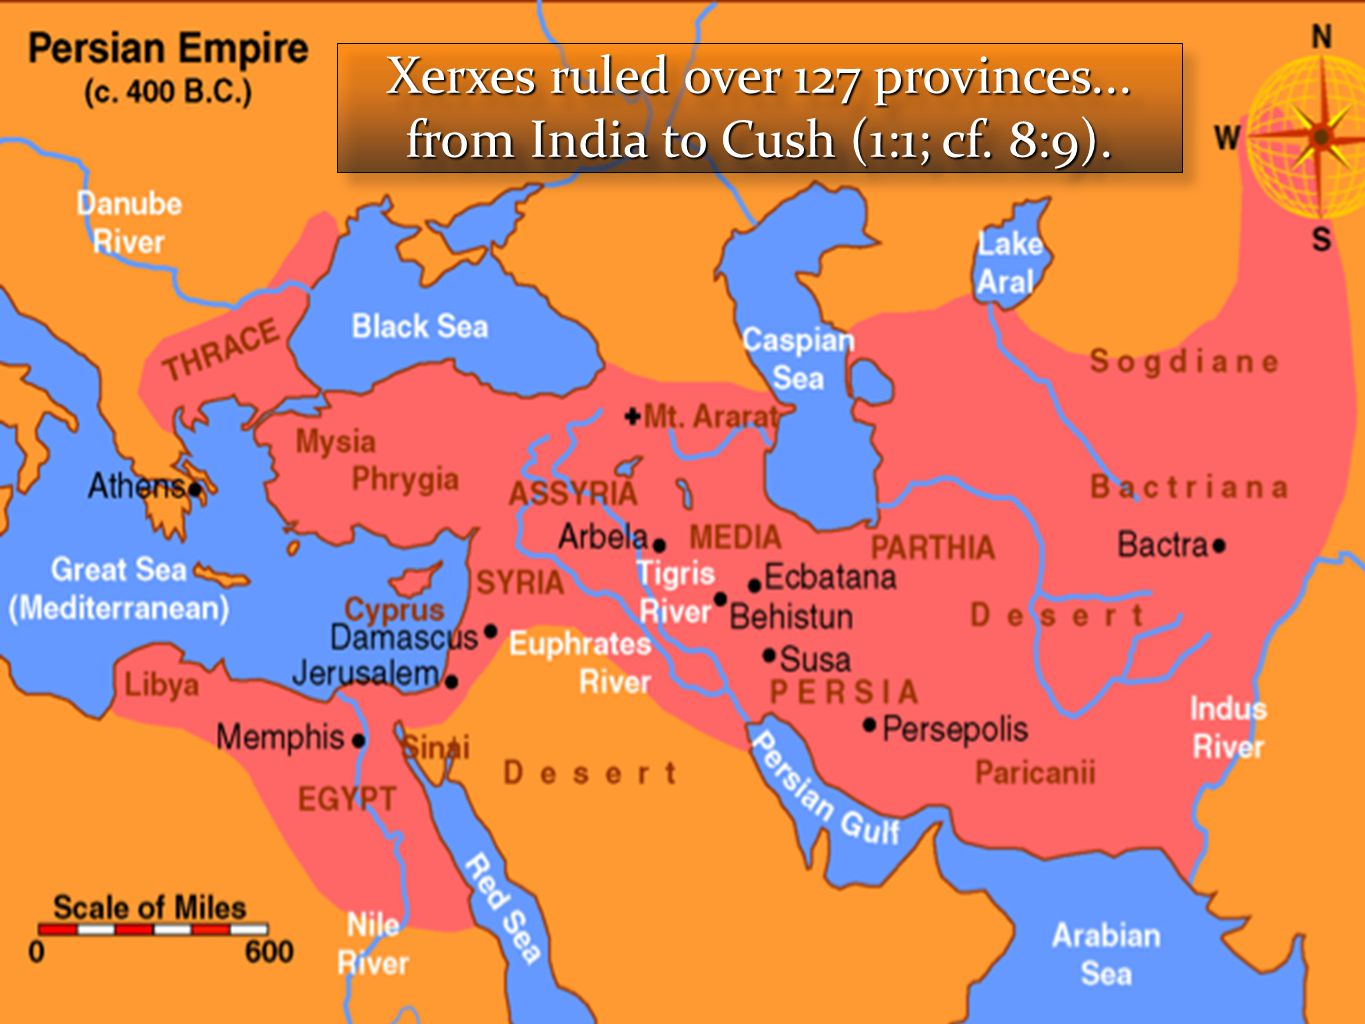 Xerxes ruled over 127 provinces... from India to Cush (1:1; cf. 8:9).